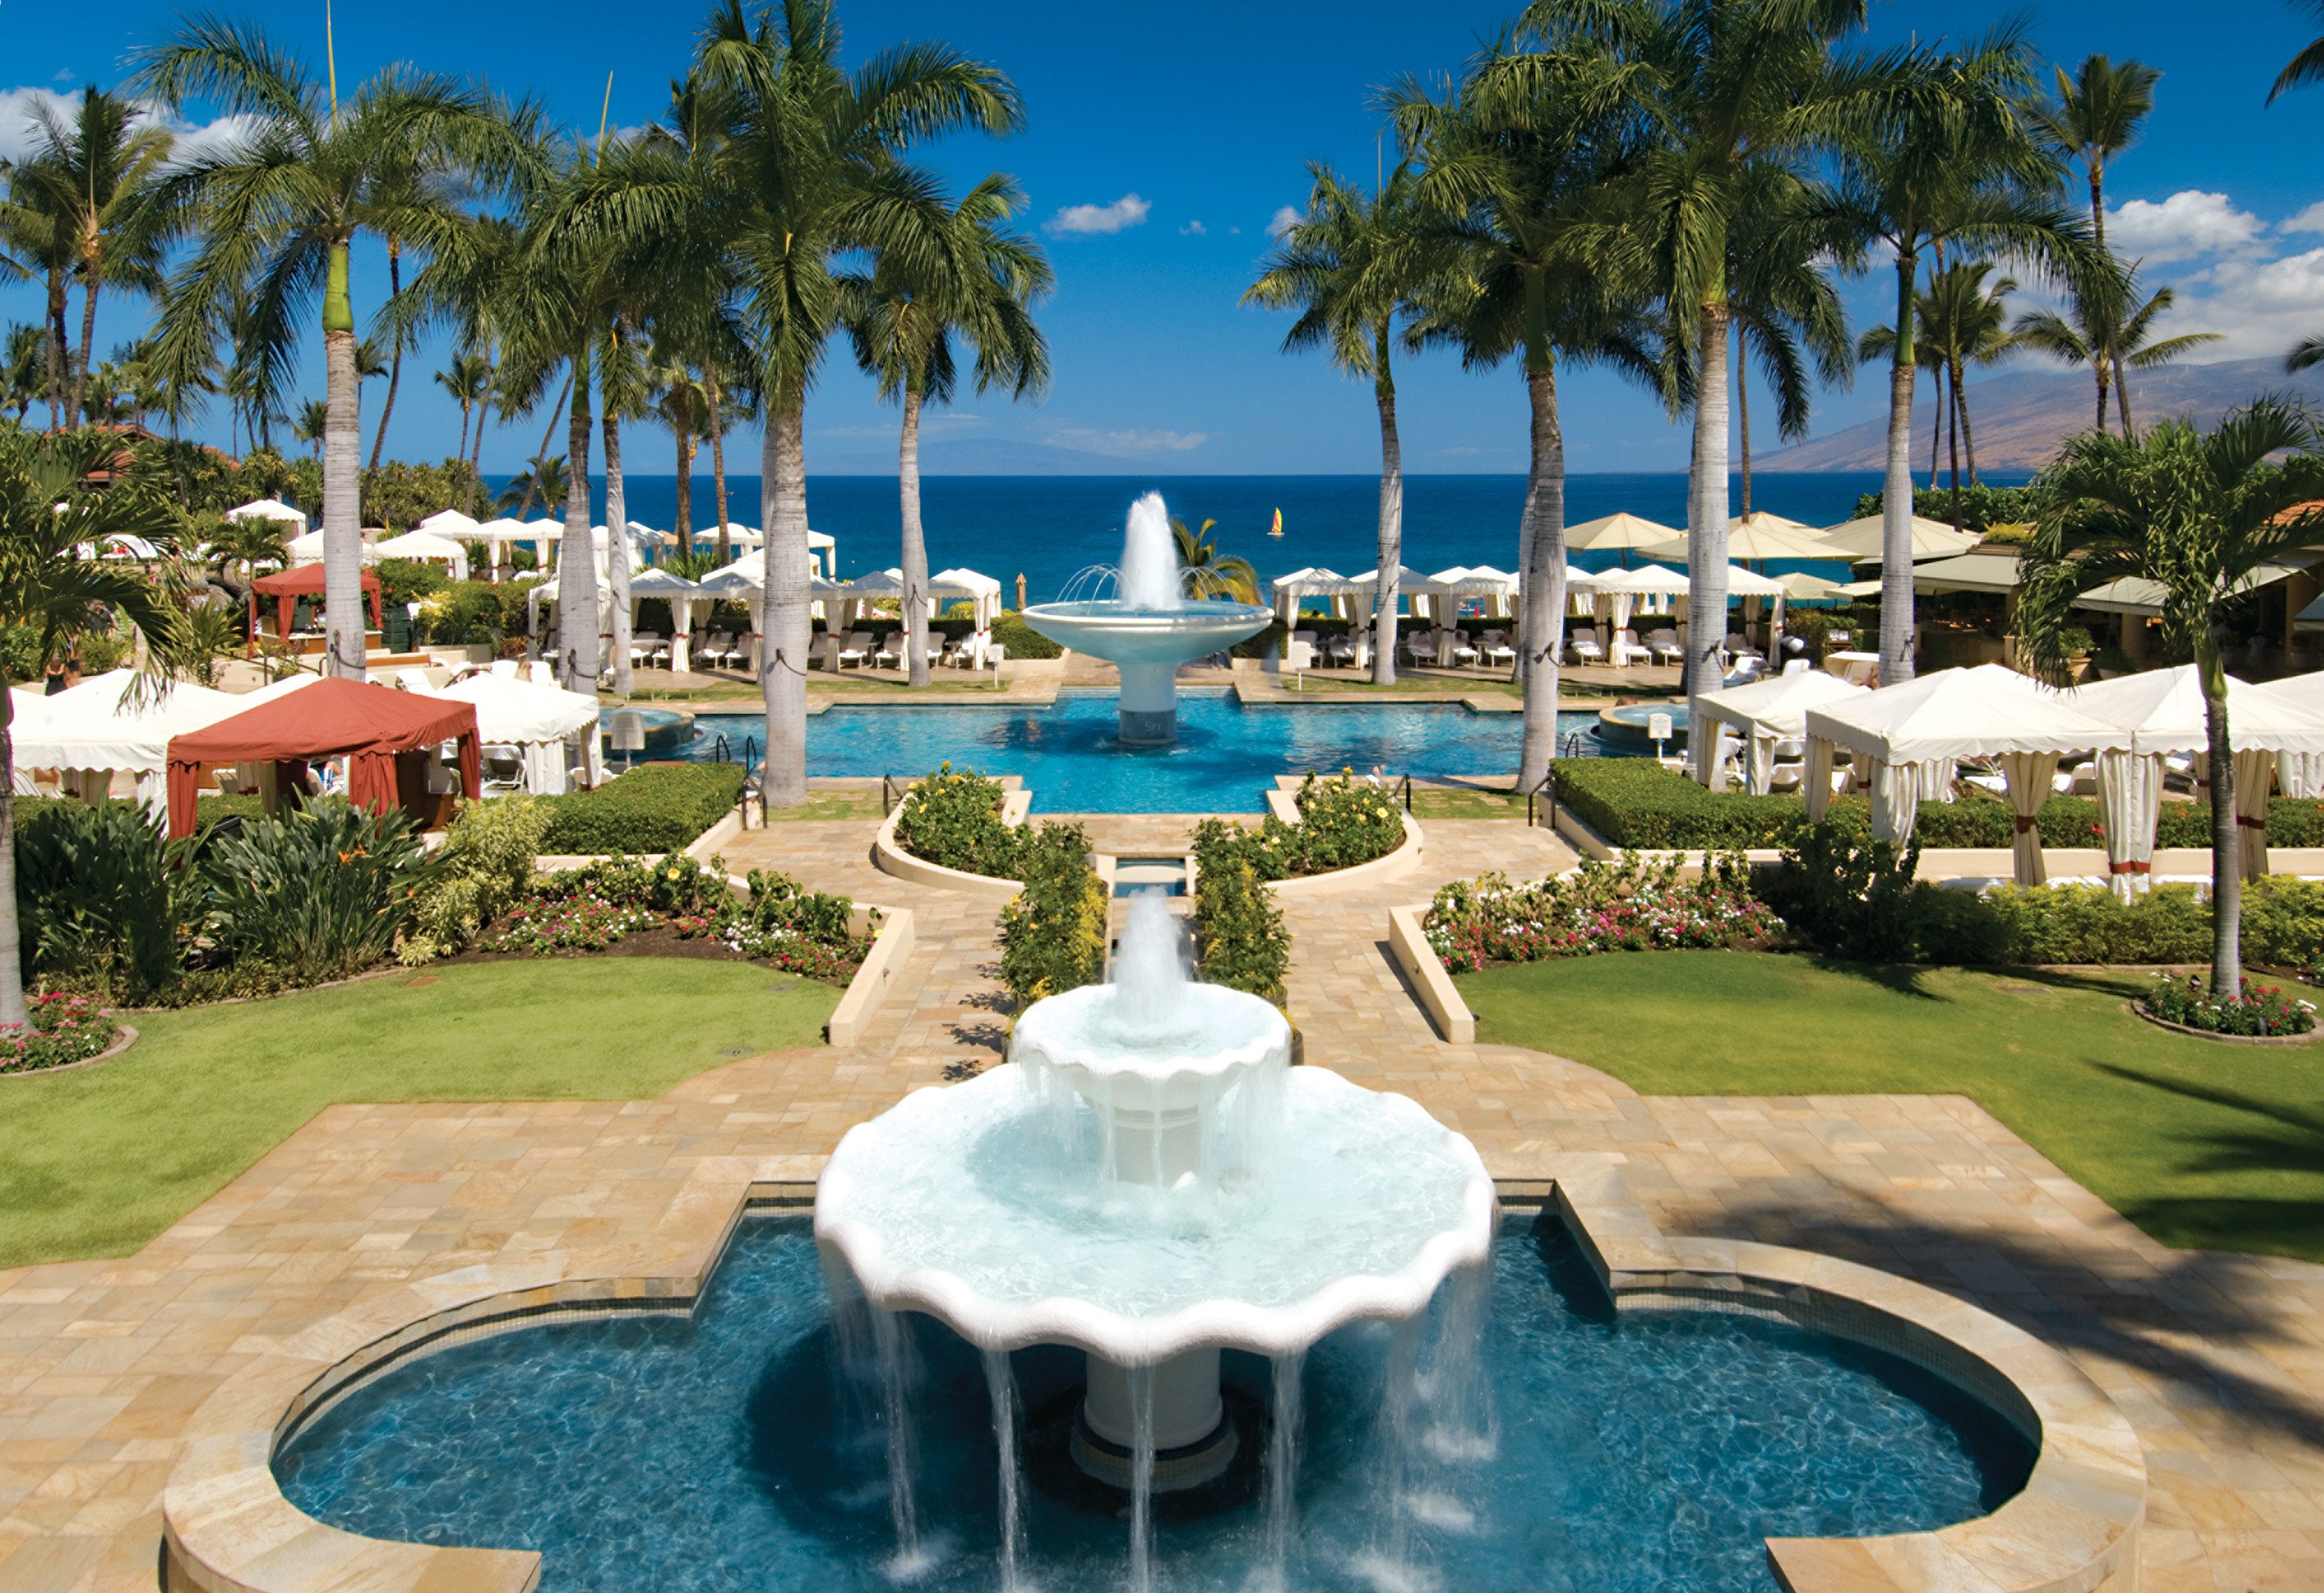 Beach Boutique Hotels Grounds Hotels Island Luxury Travel Patio Pool Tropical tree outdoor sky grass palm Resort swimming pool leisure estate vacation park Golf resort town Garden Water park mansion palace Villa caribbean plant shade